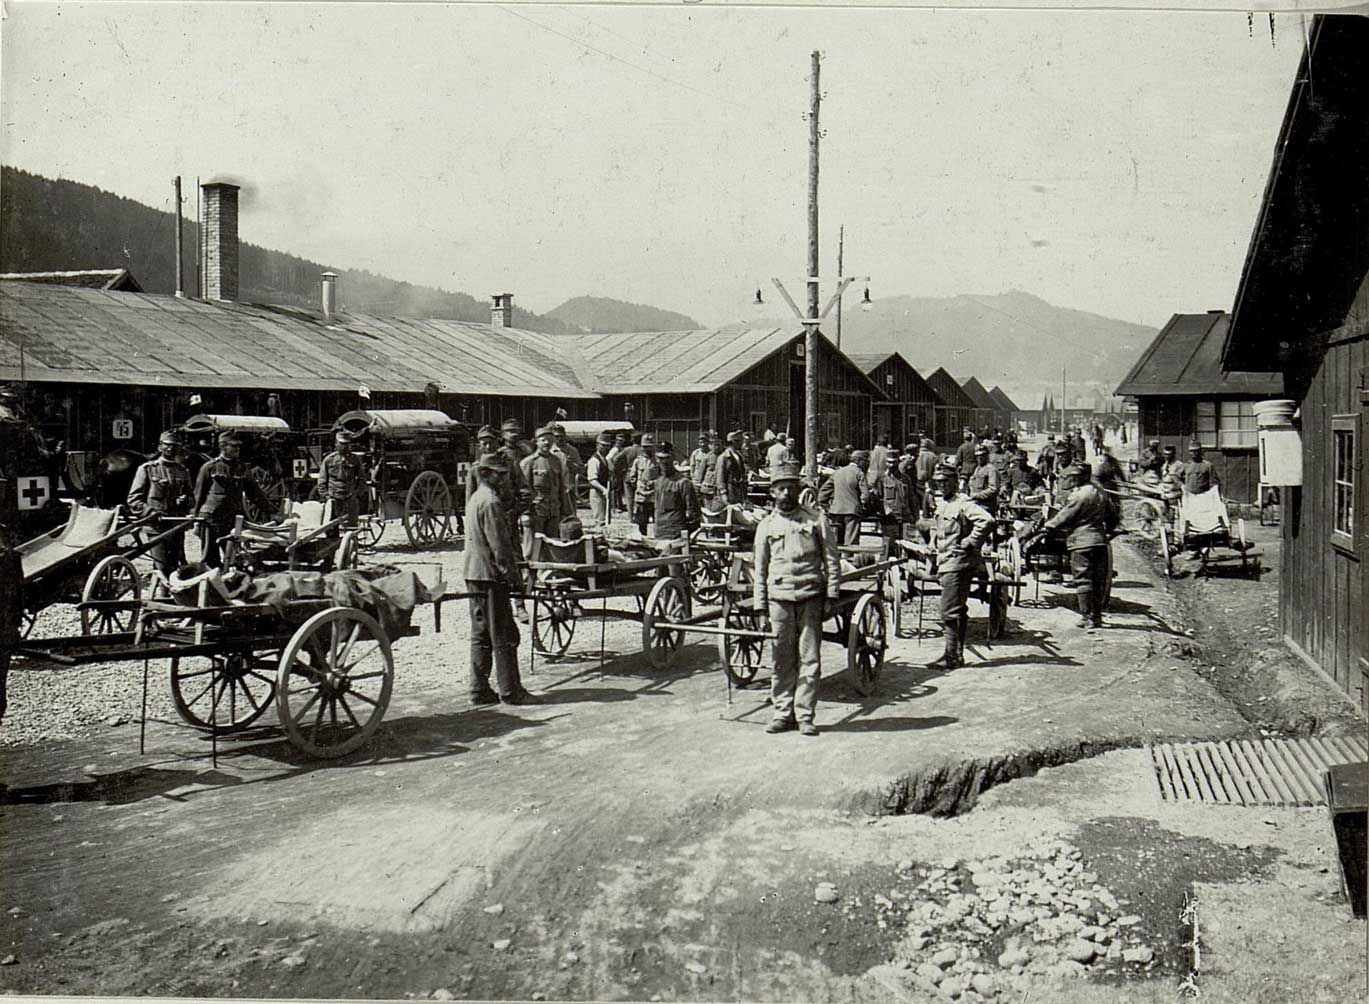 The railway network was used to transport not just goods, weapons and ammunition, but also sick and wounded soldiers. This photograph shows a 'sick sorting post' in Pradl near Innsbruck.